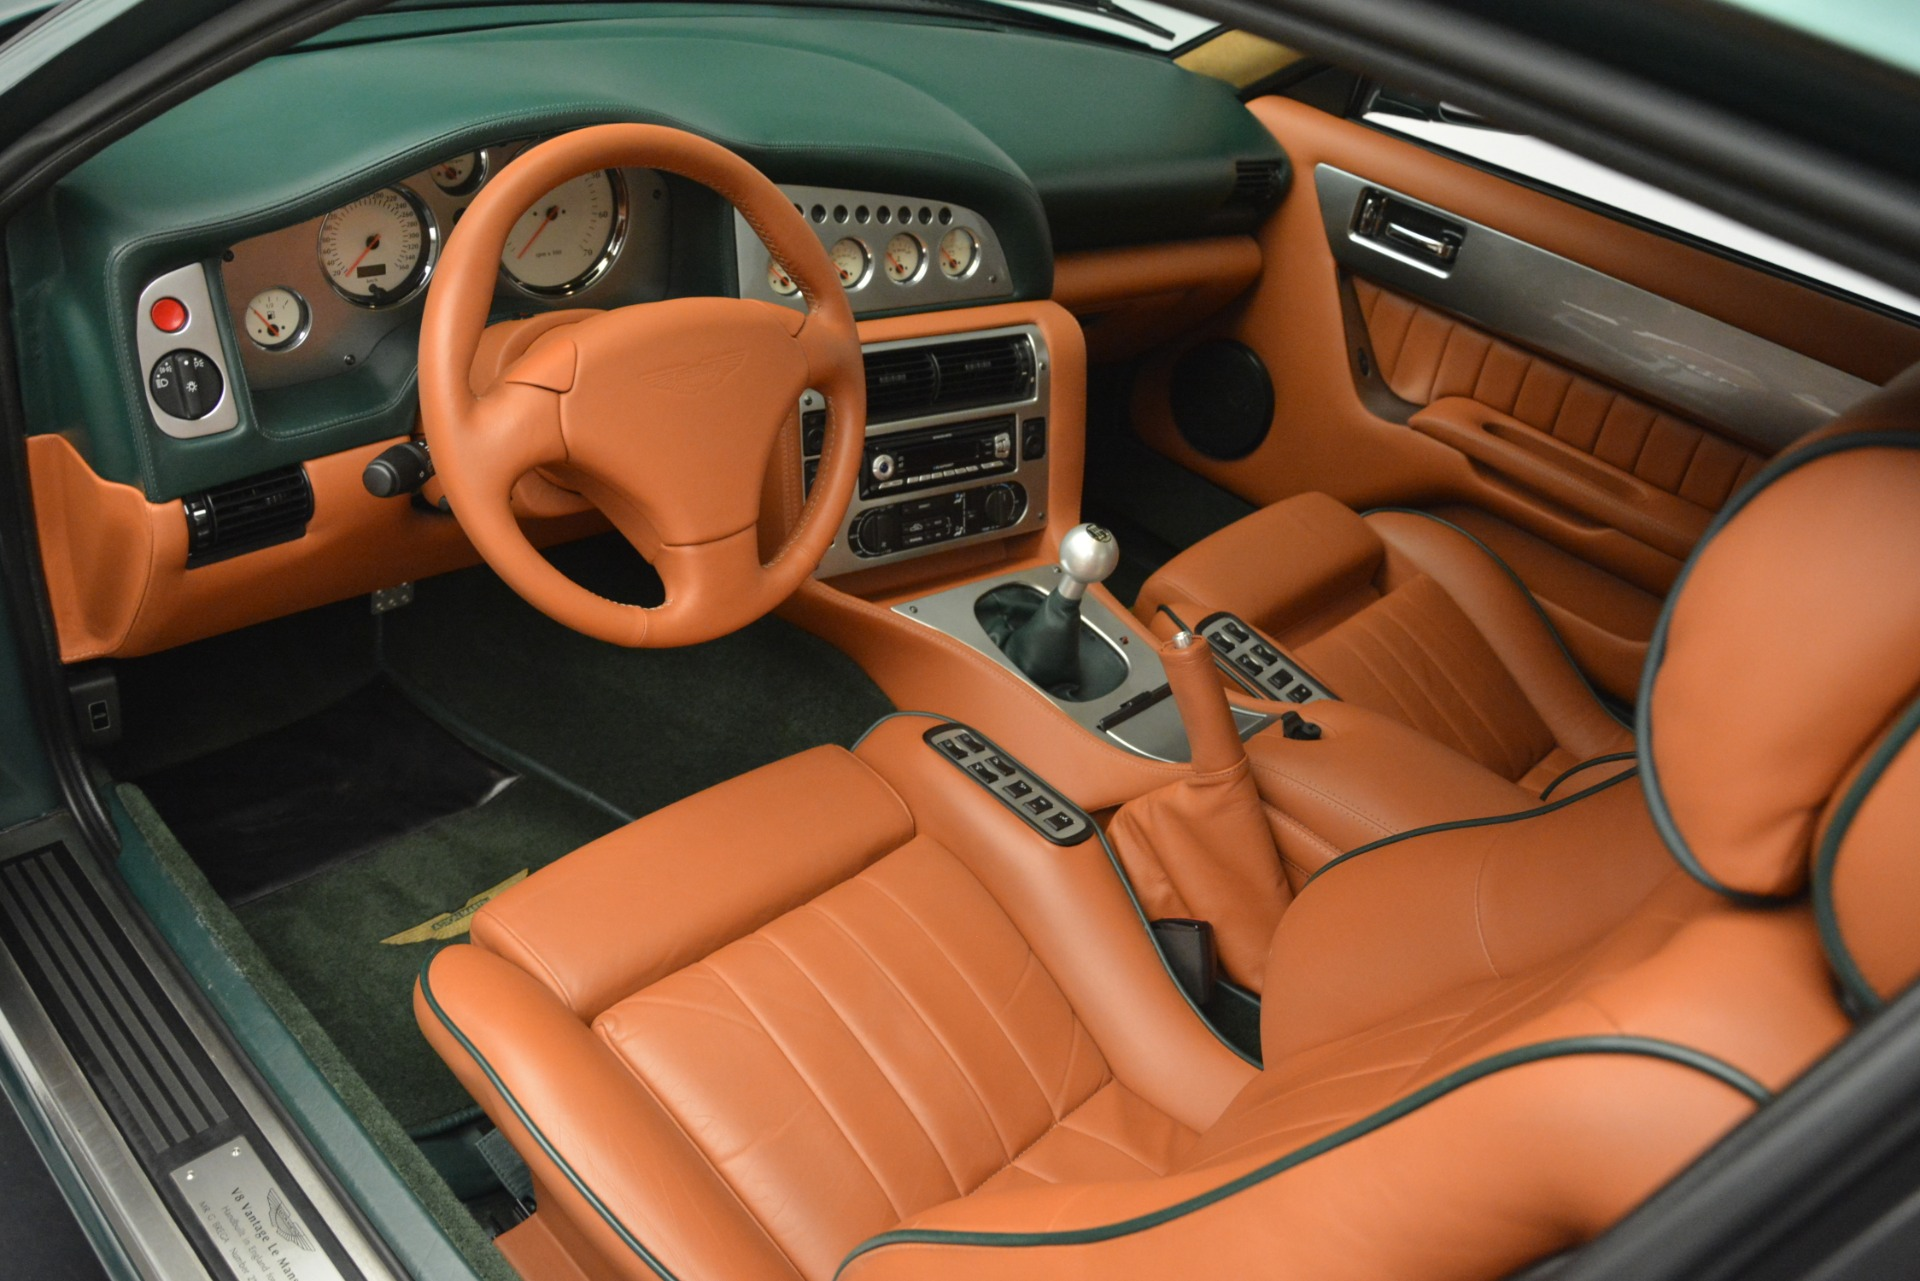 Used 1999 Aston Martin V8 Vantage Le Mans V600 Coupe For Sale In Greenwich, CT 2789_p15